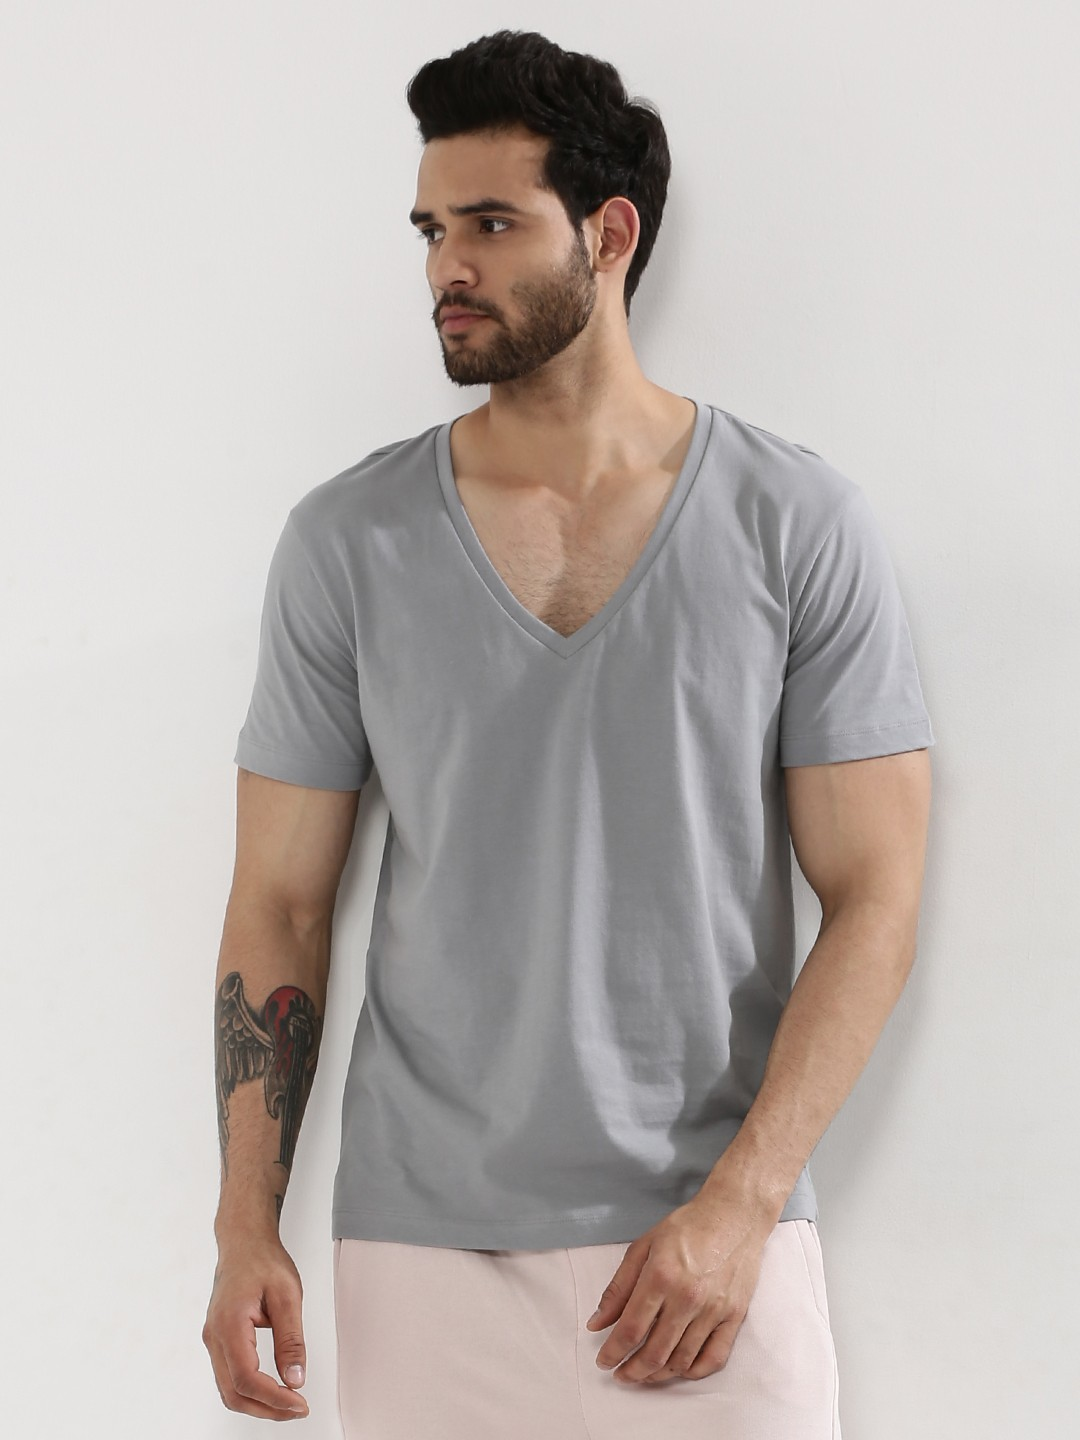 Find great deals on eBay for v neck t shirt for men. Shop with confidence.